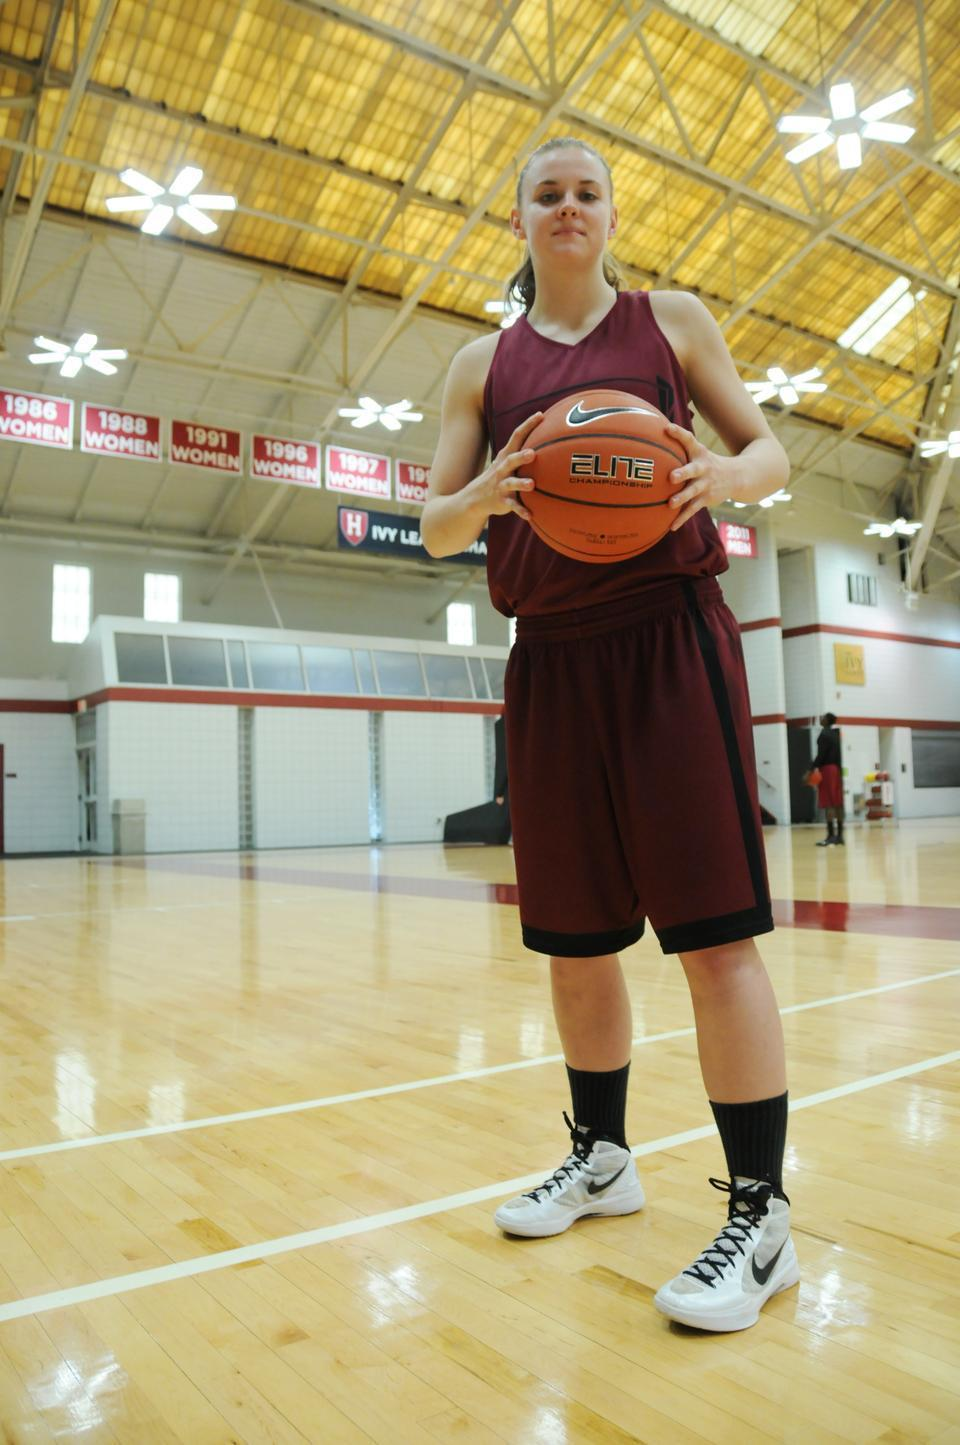 Christine Clark, entering her second year on the team, will be a forced to be reckoned with in the Ivy League